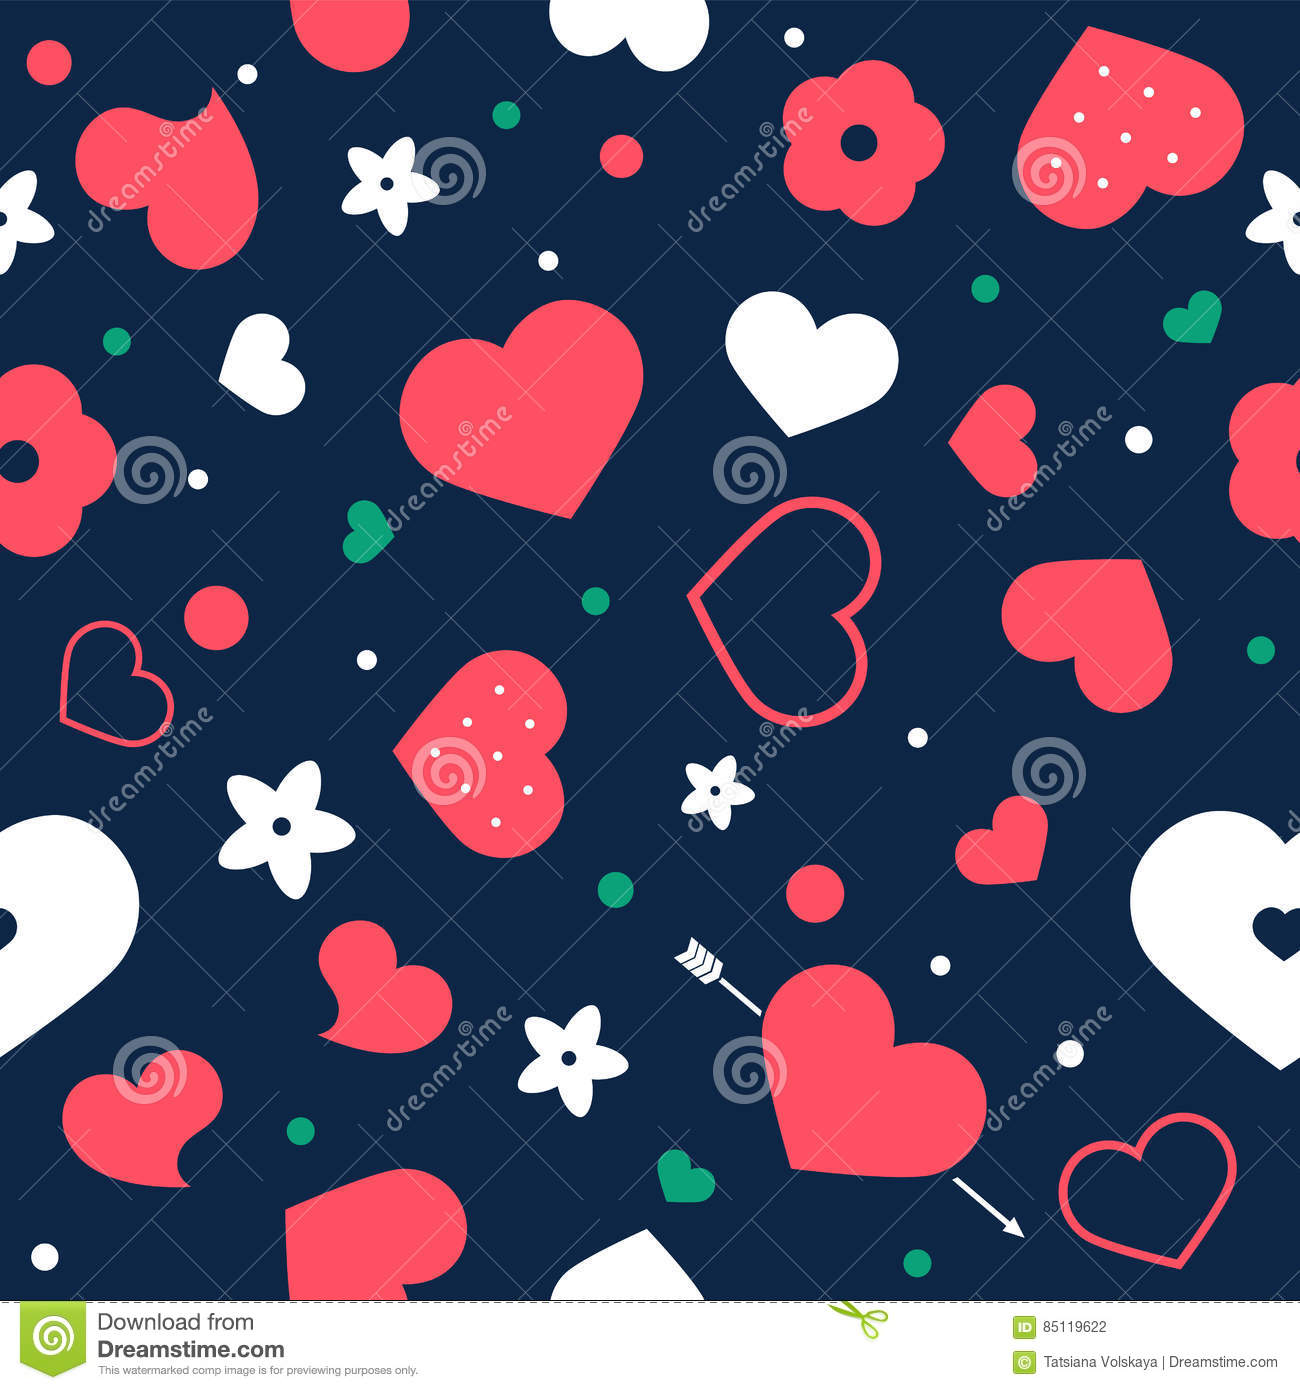 Vector flat background, seamless pattern design with hearts.